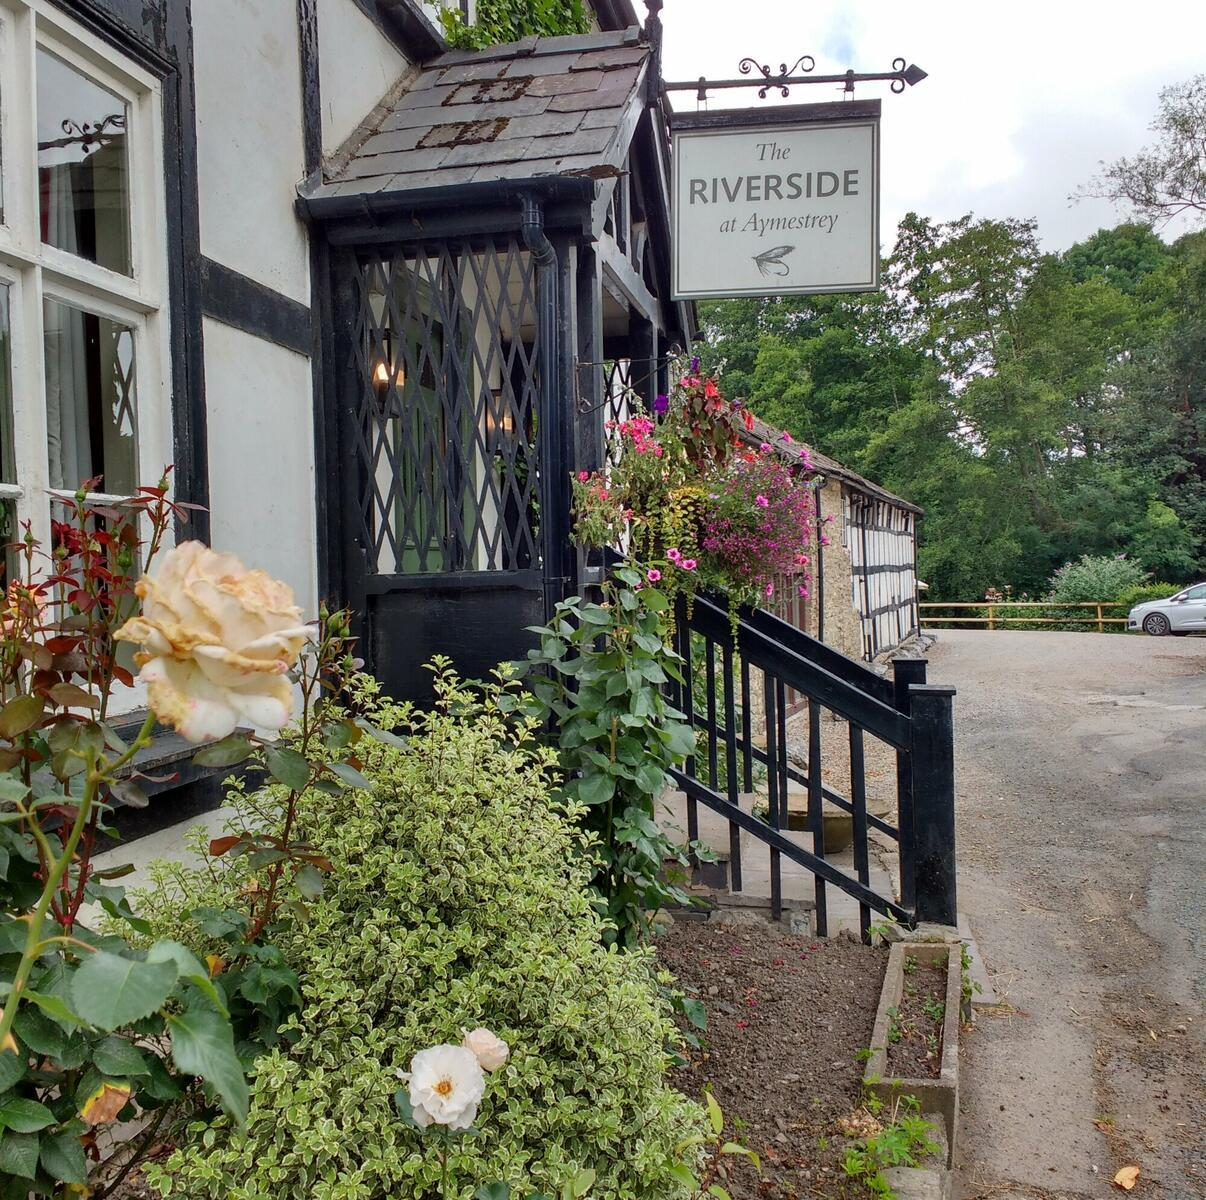 Cycle to a riverside Inn